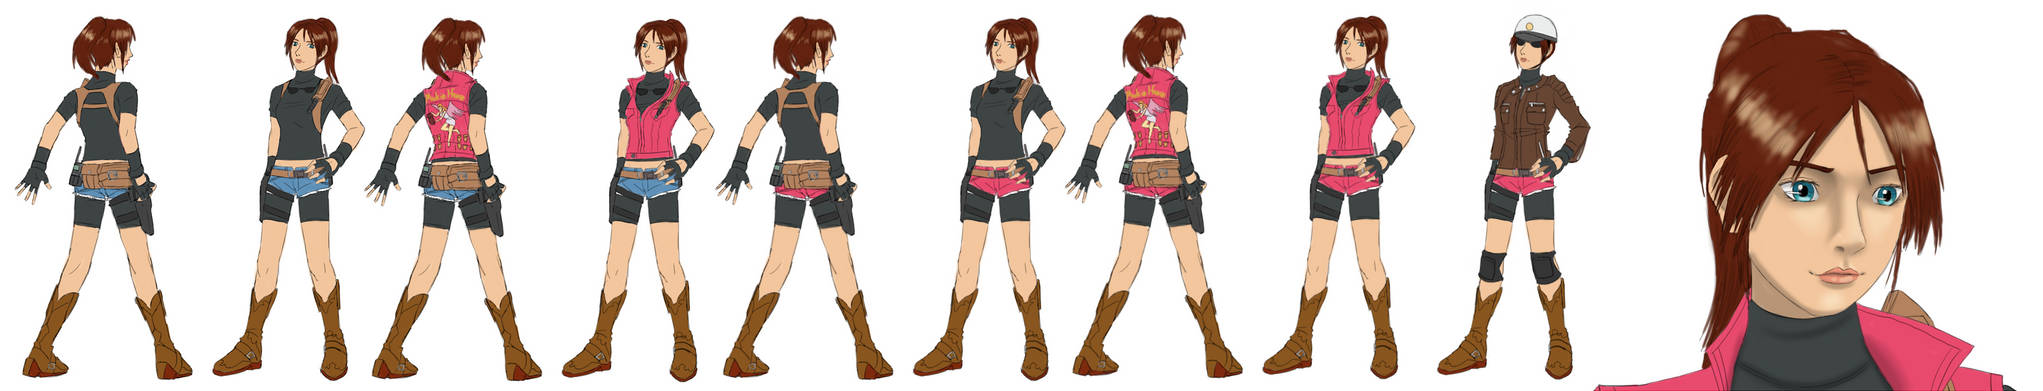 My Ideal Design for Resident Evil 2 Remake Claire